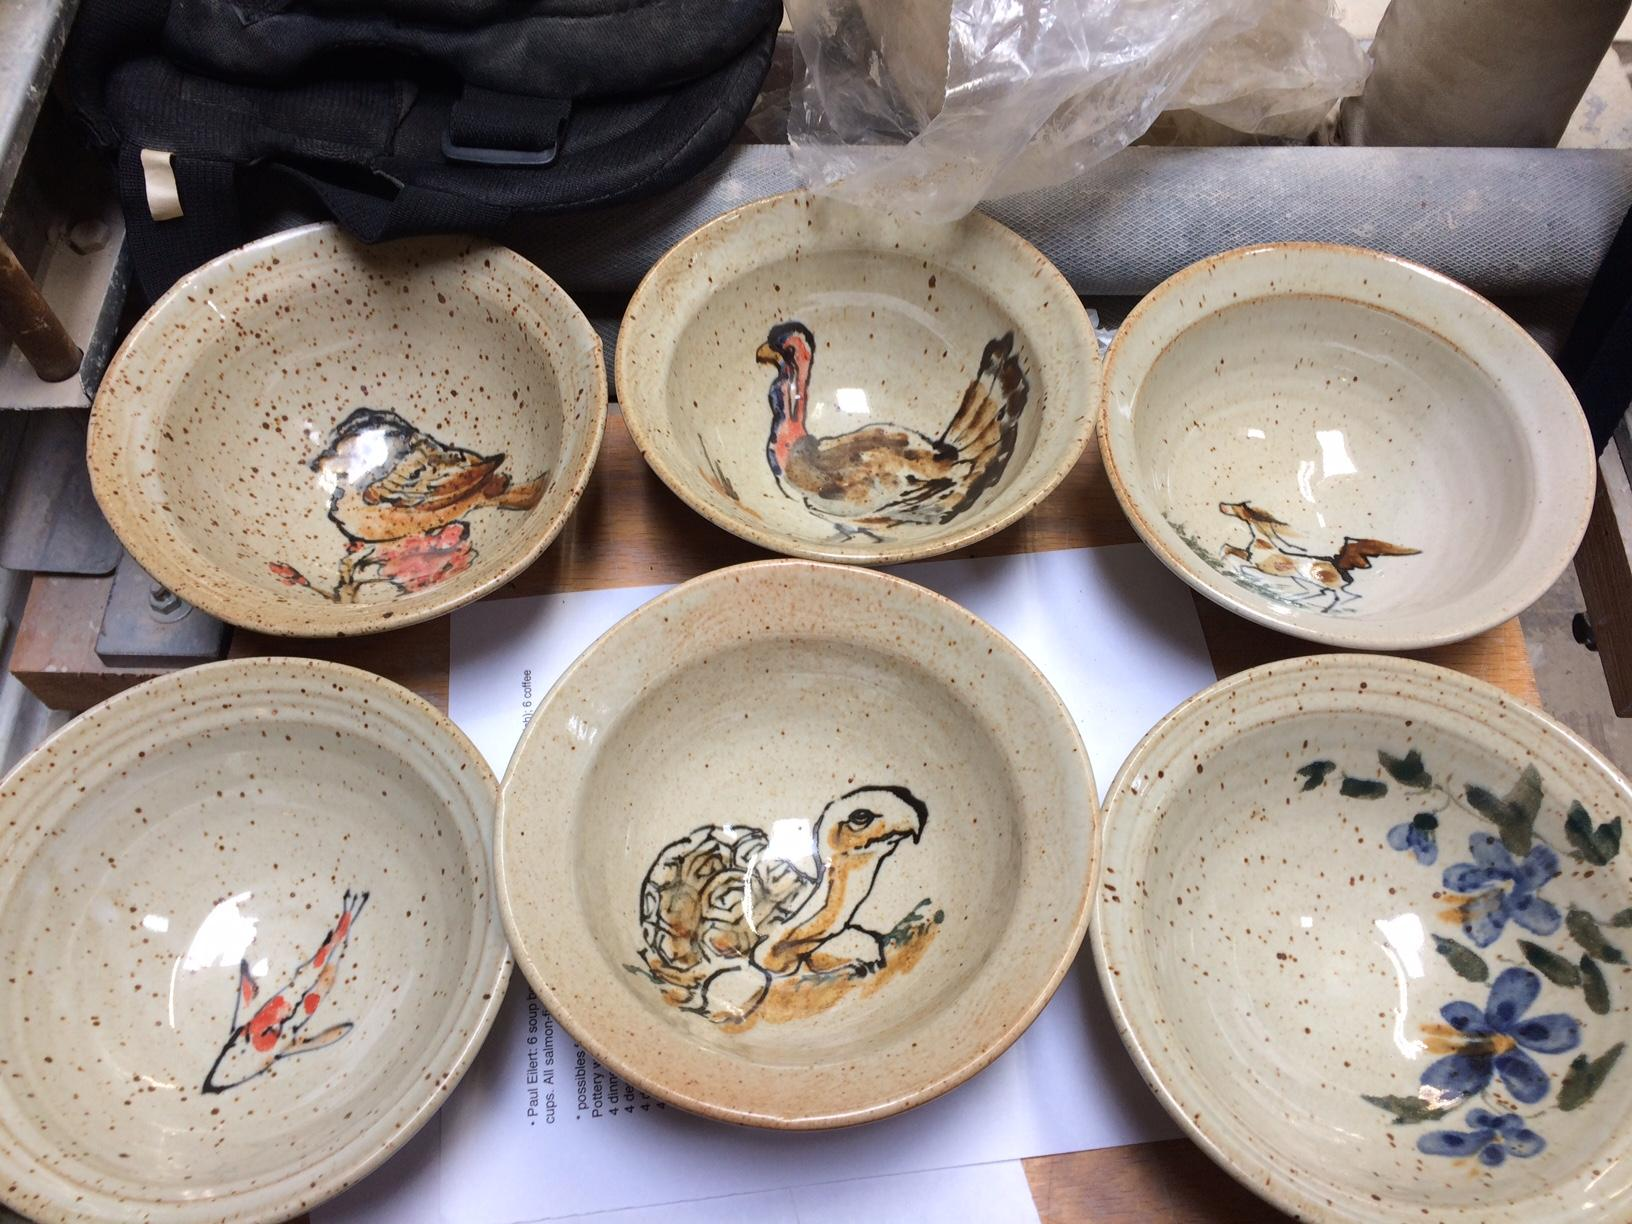 Frank Gosar has been making bowls for Food for Lane County's Empty Bowls fundraiser for 26 years. His donations help provide meals for thousands of people in the community. (SBG photo)